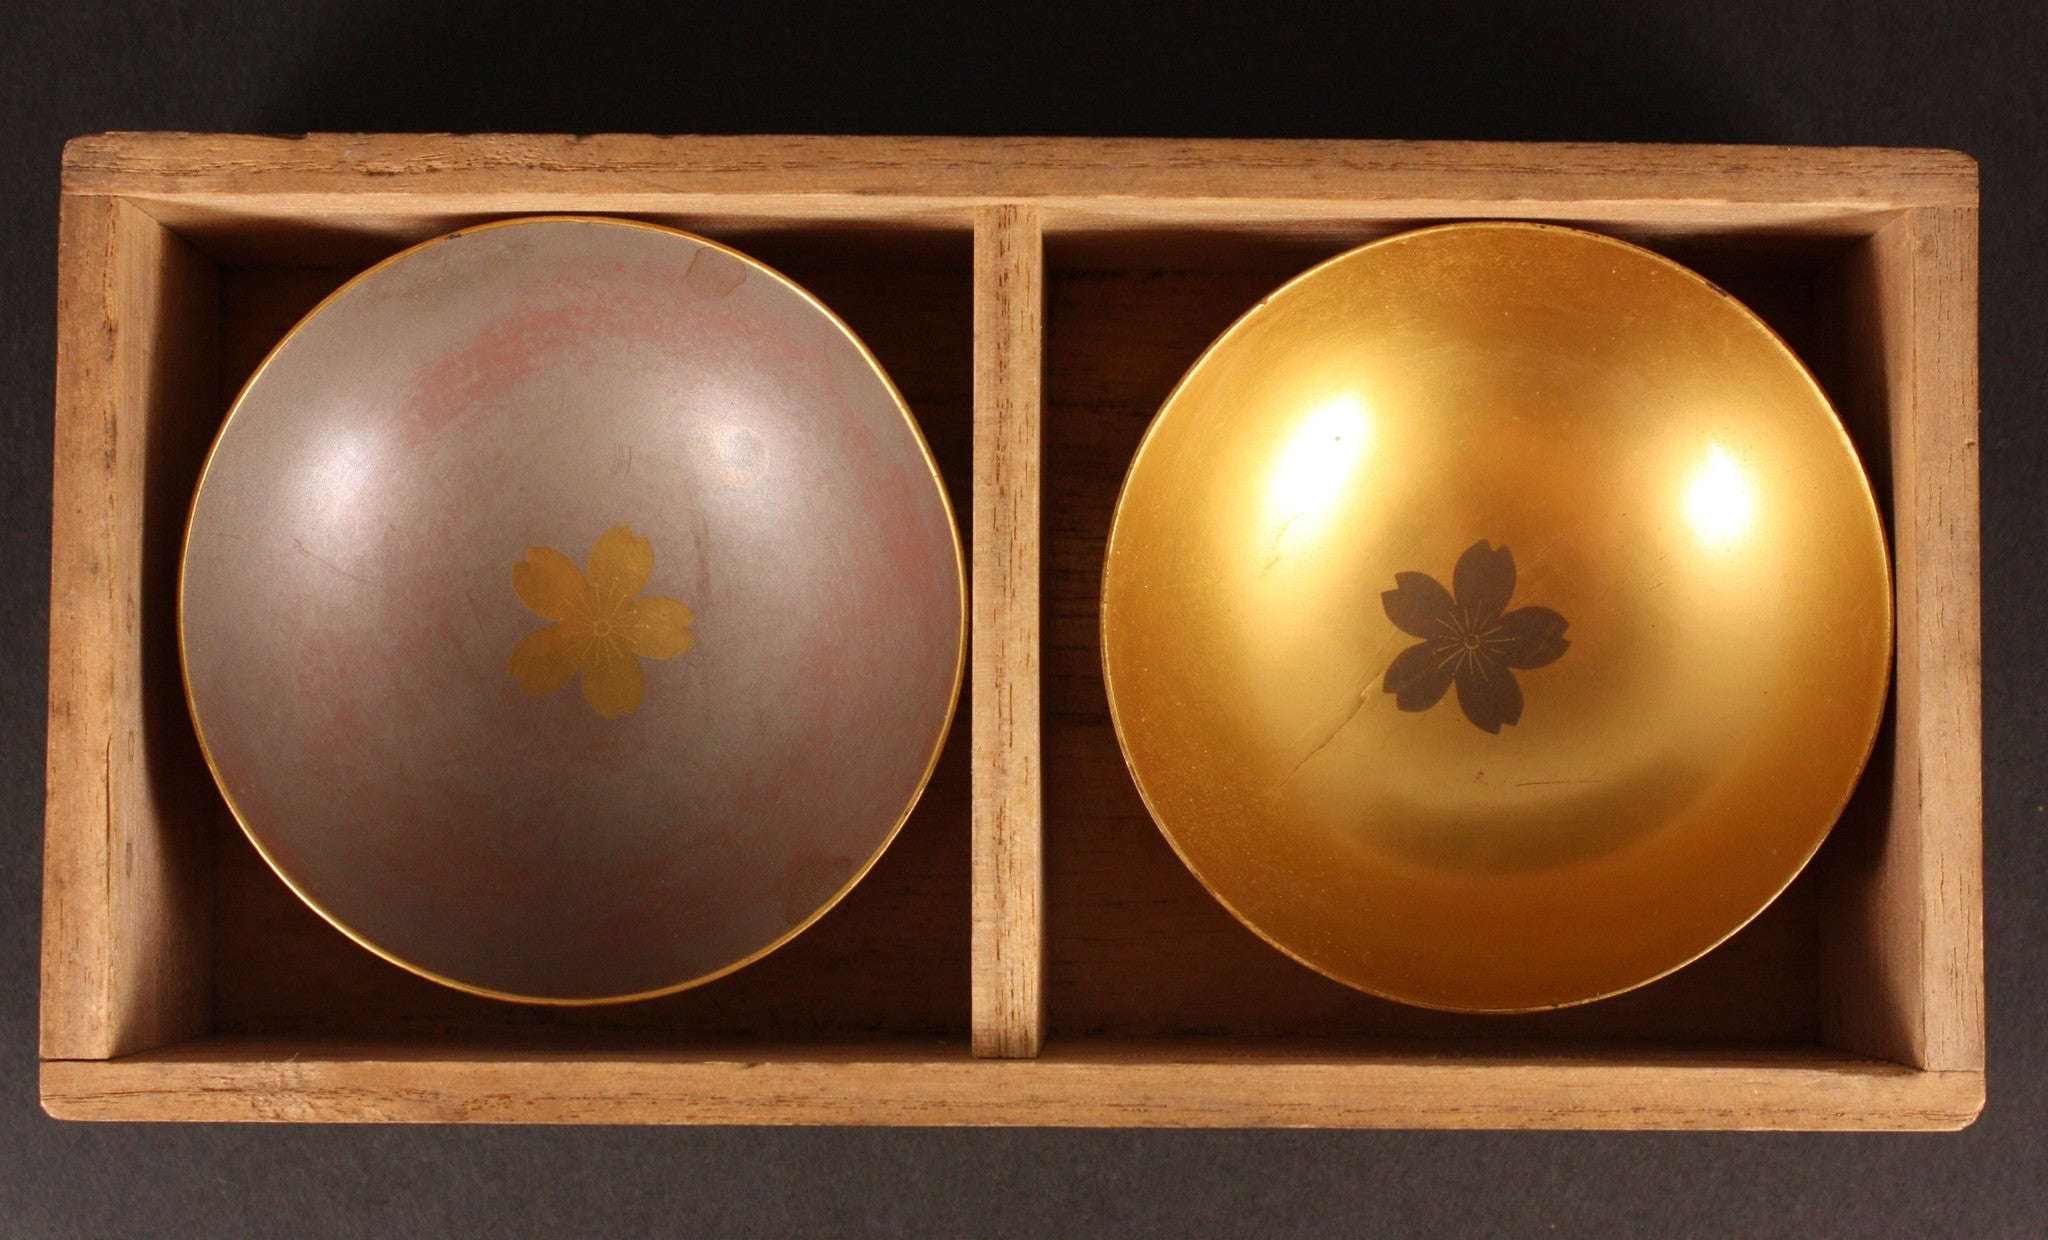 Antique Japanese WW1 1914 Dispatch Return Commemoration Sake Cups